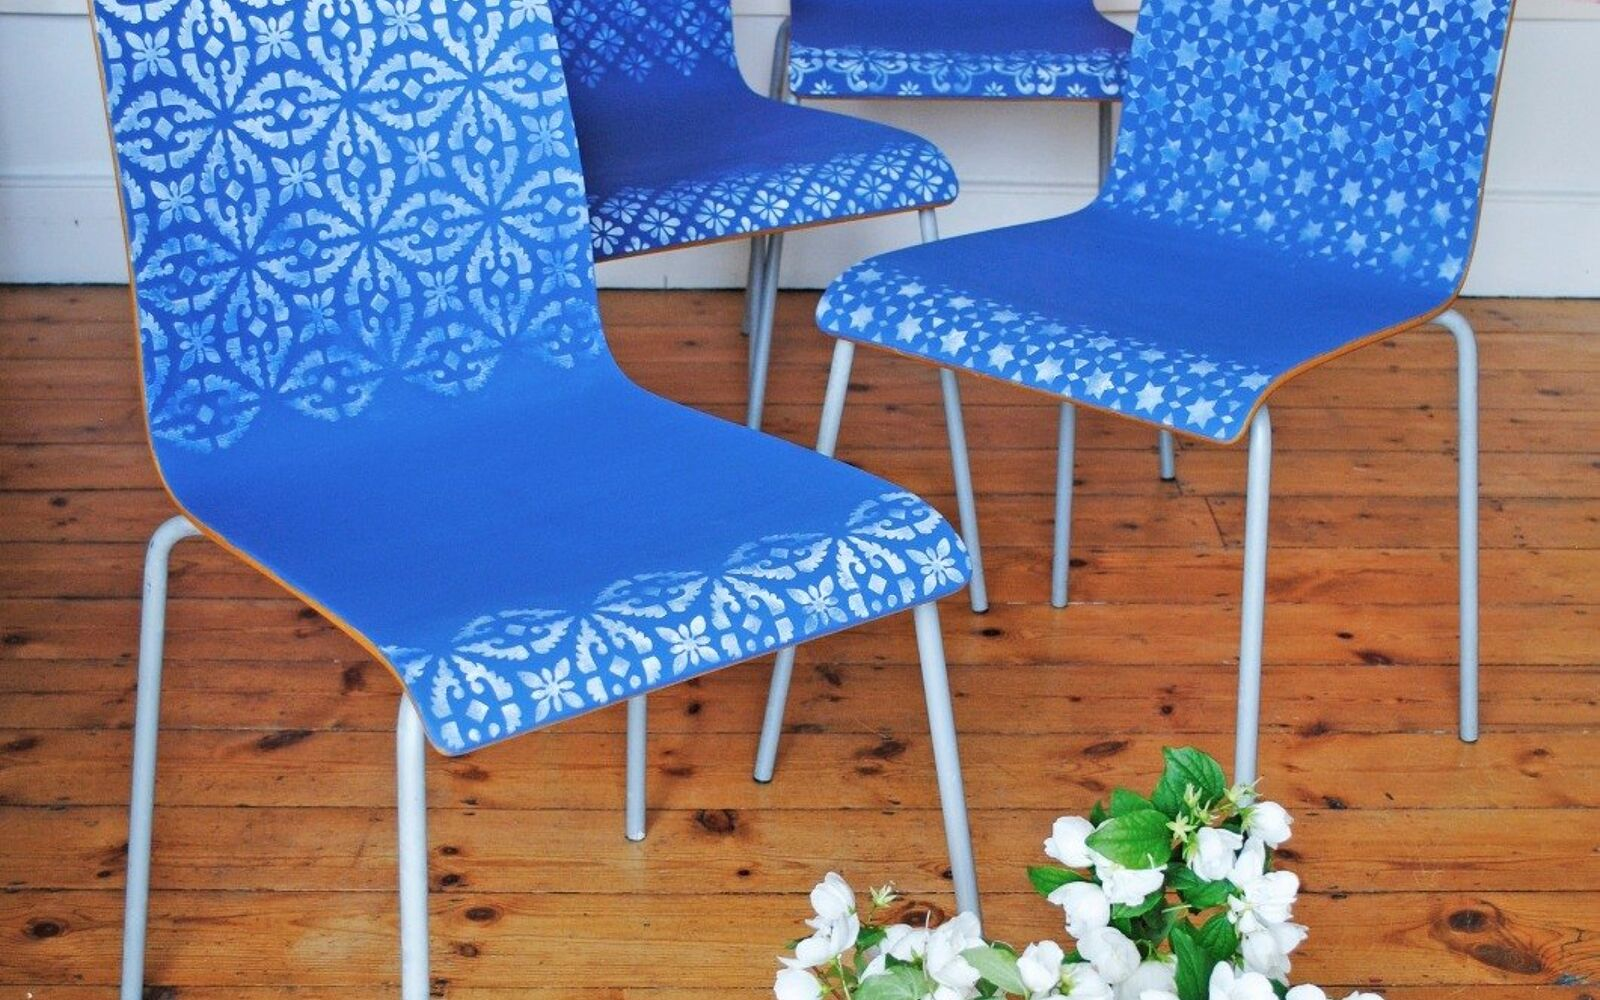 s 14 glamorous ways to upgrade your home using stencils, Try this Ombre Stenciled Chairs